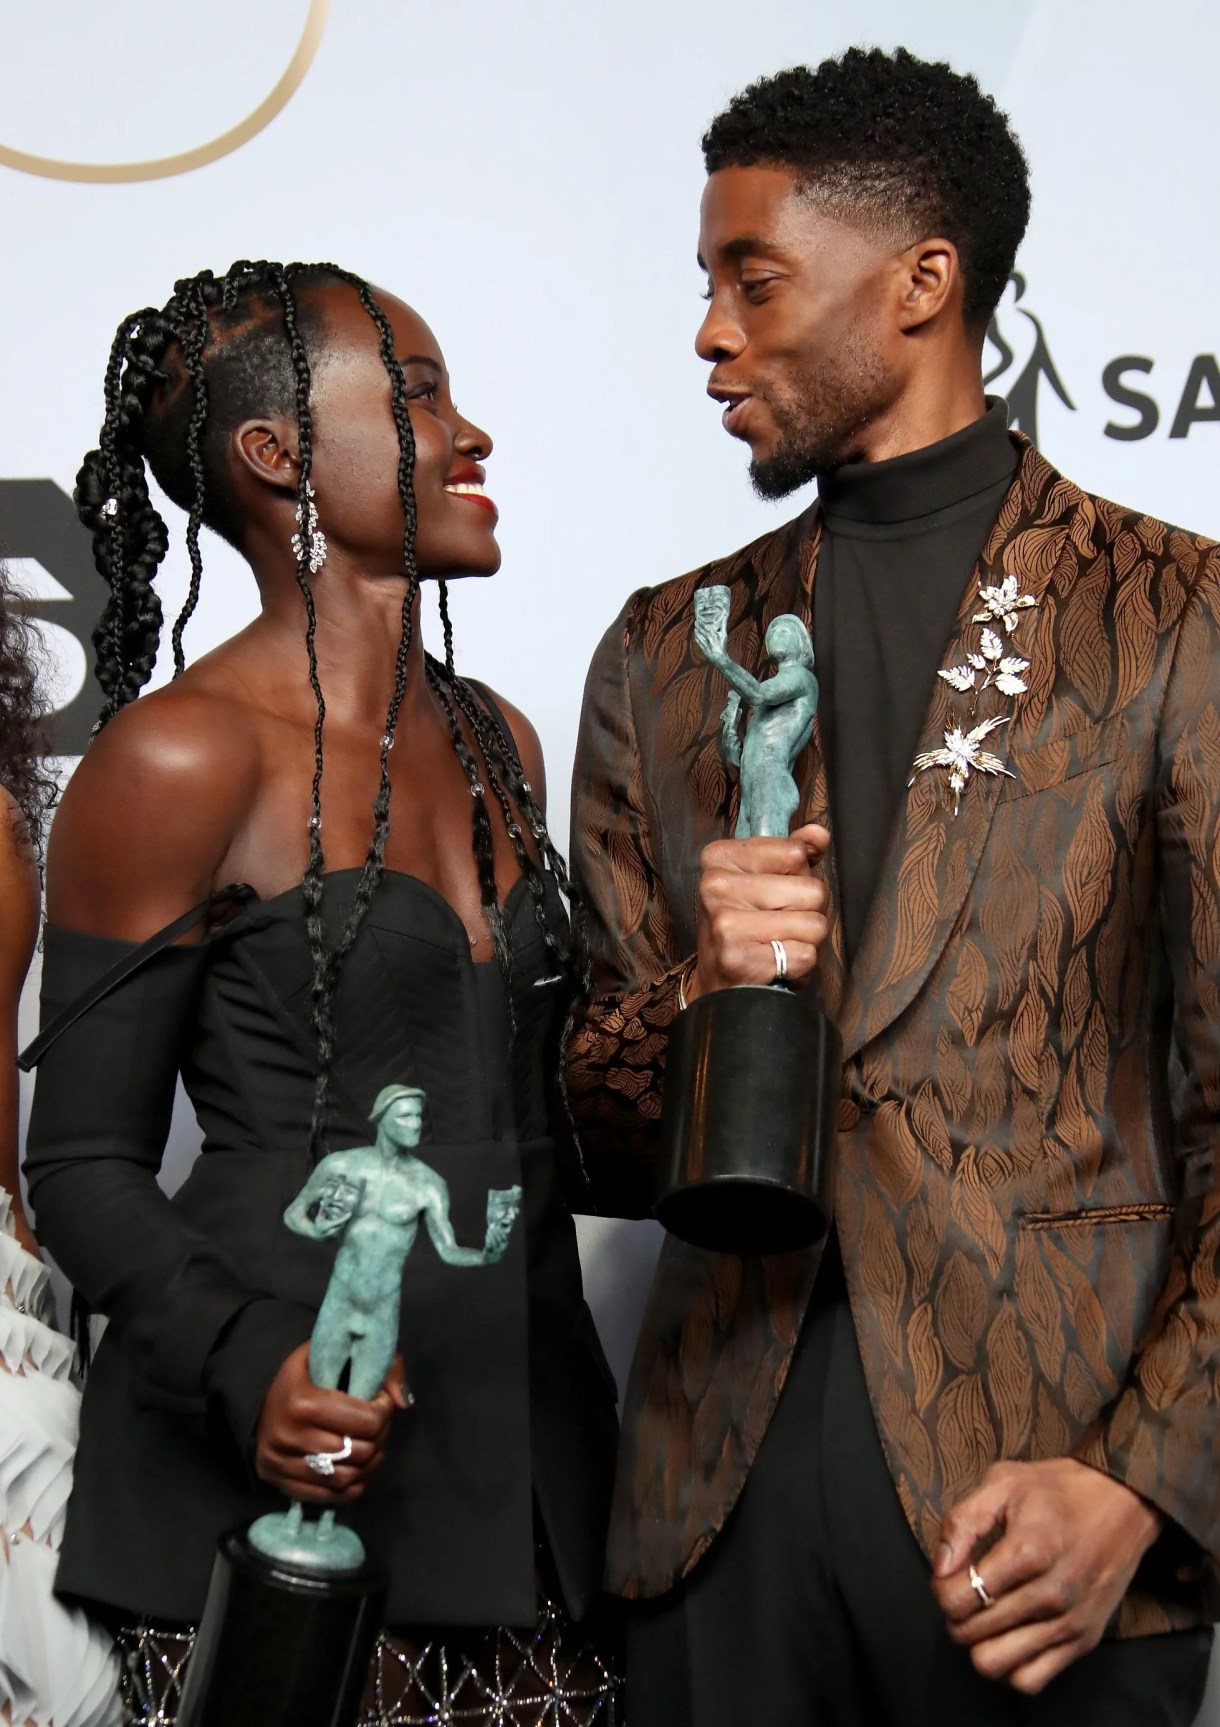 LOS ANGELES, CA - JANUARY 27: Lupita Nyong'o and Chadwick Boseman, winners of Outstanding Performance by a Cast in a Motion Picture for 'Black Panther,' pose in the press room during the 25th Annual Screen Actors Guild Awards at The Shrine Auditorium on January 27, 2019 in Los Angeles, California. (Photo by Dan MacMedan/Getty Images) *** Local Caption *** Lupita Nyong'o; Chadwick Boseman